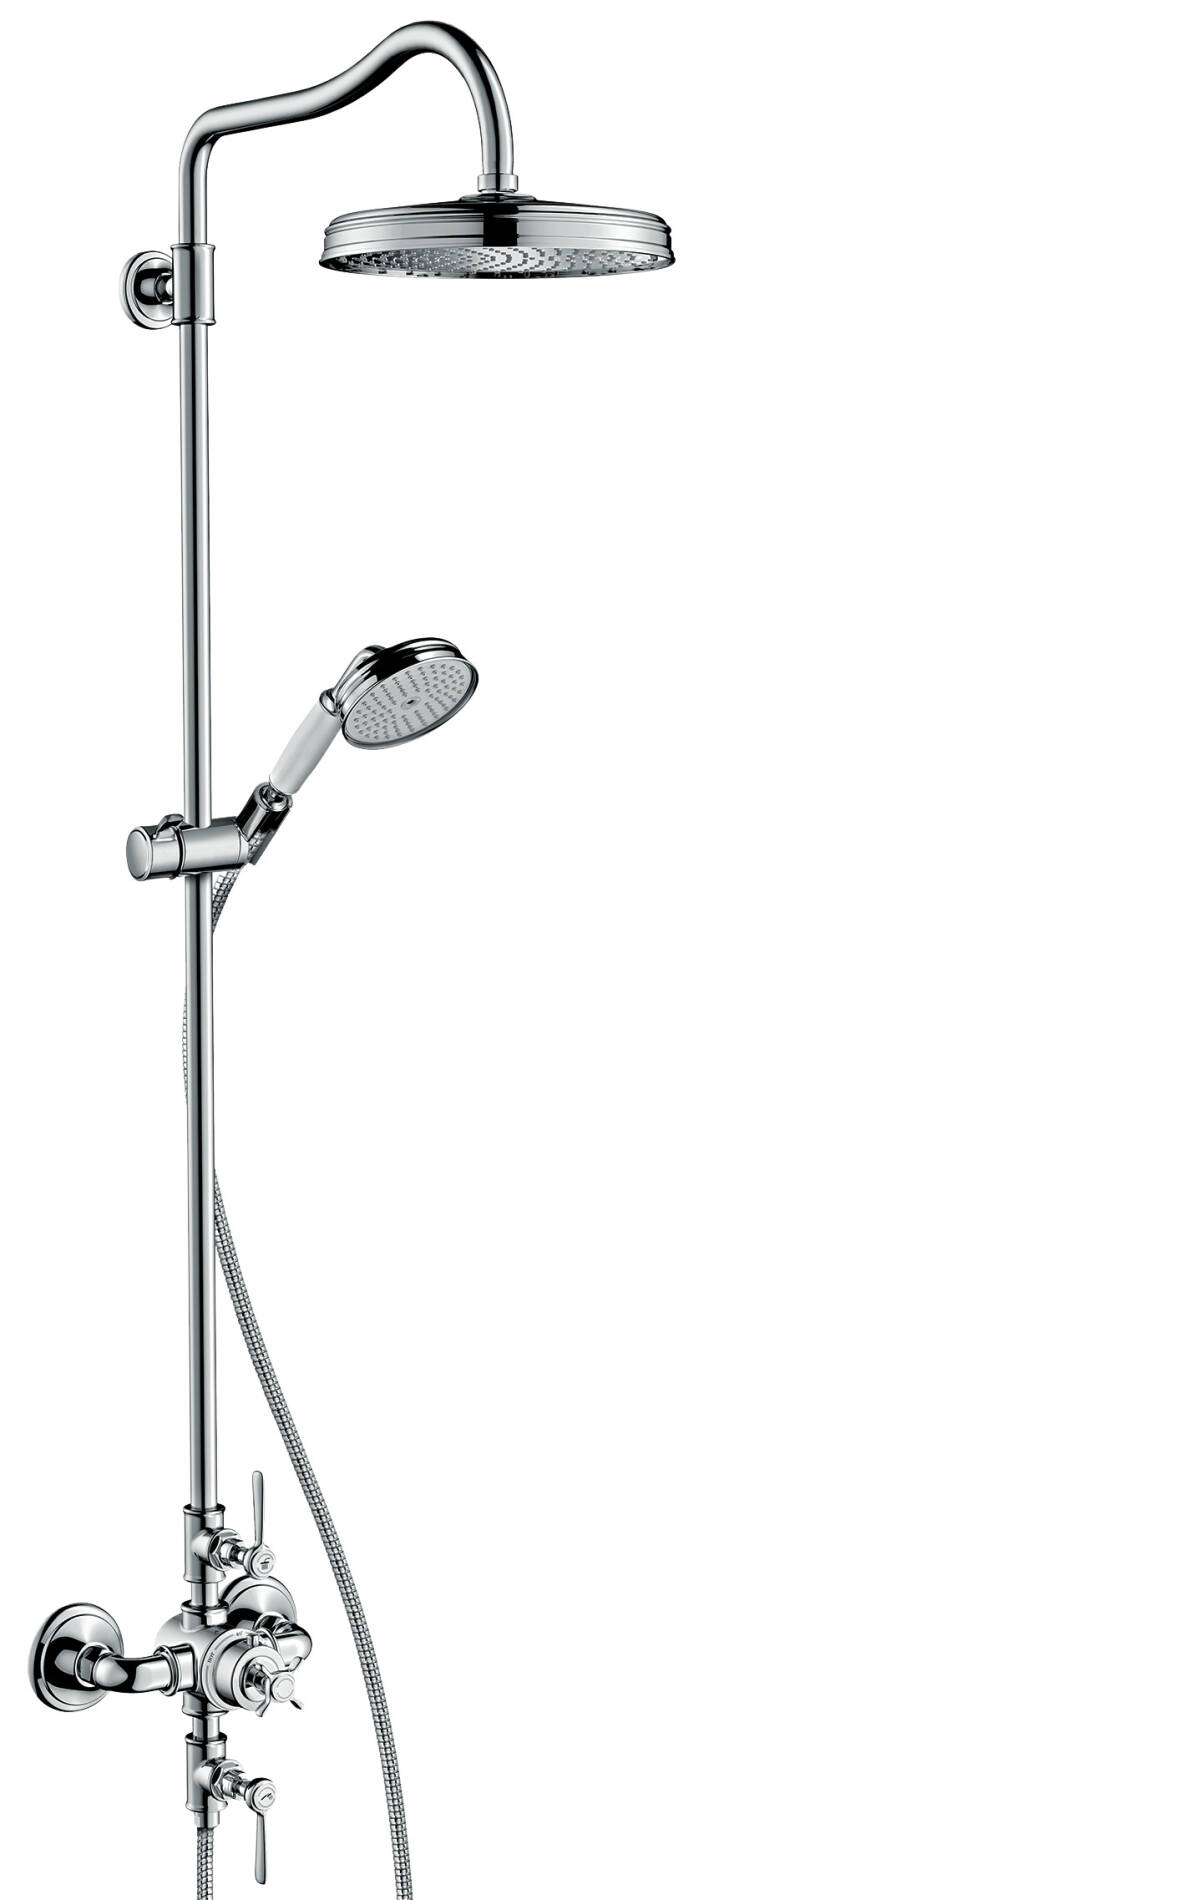 Showerpipe with thermostat and overhead shower 240 1jet, Brushed Black Chrome, 16572340